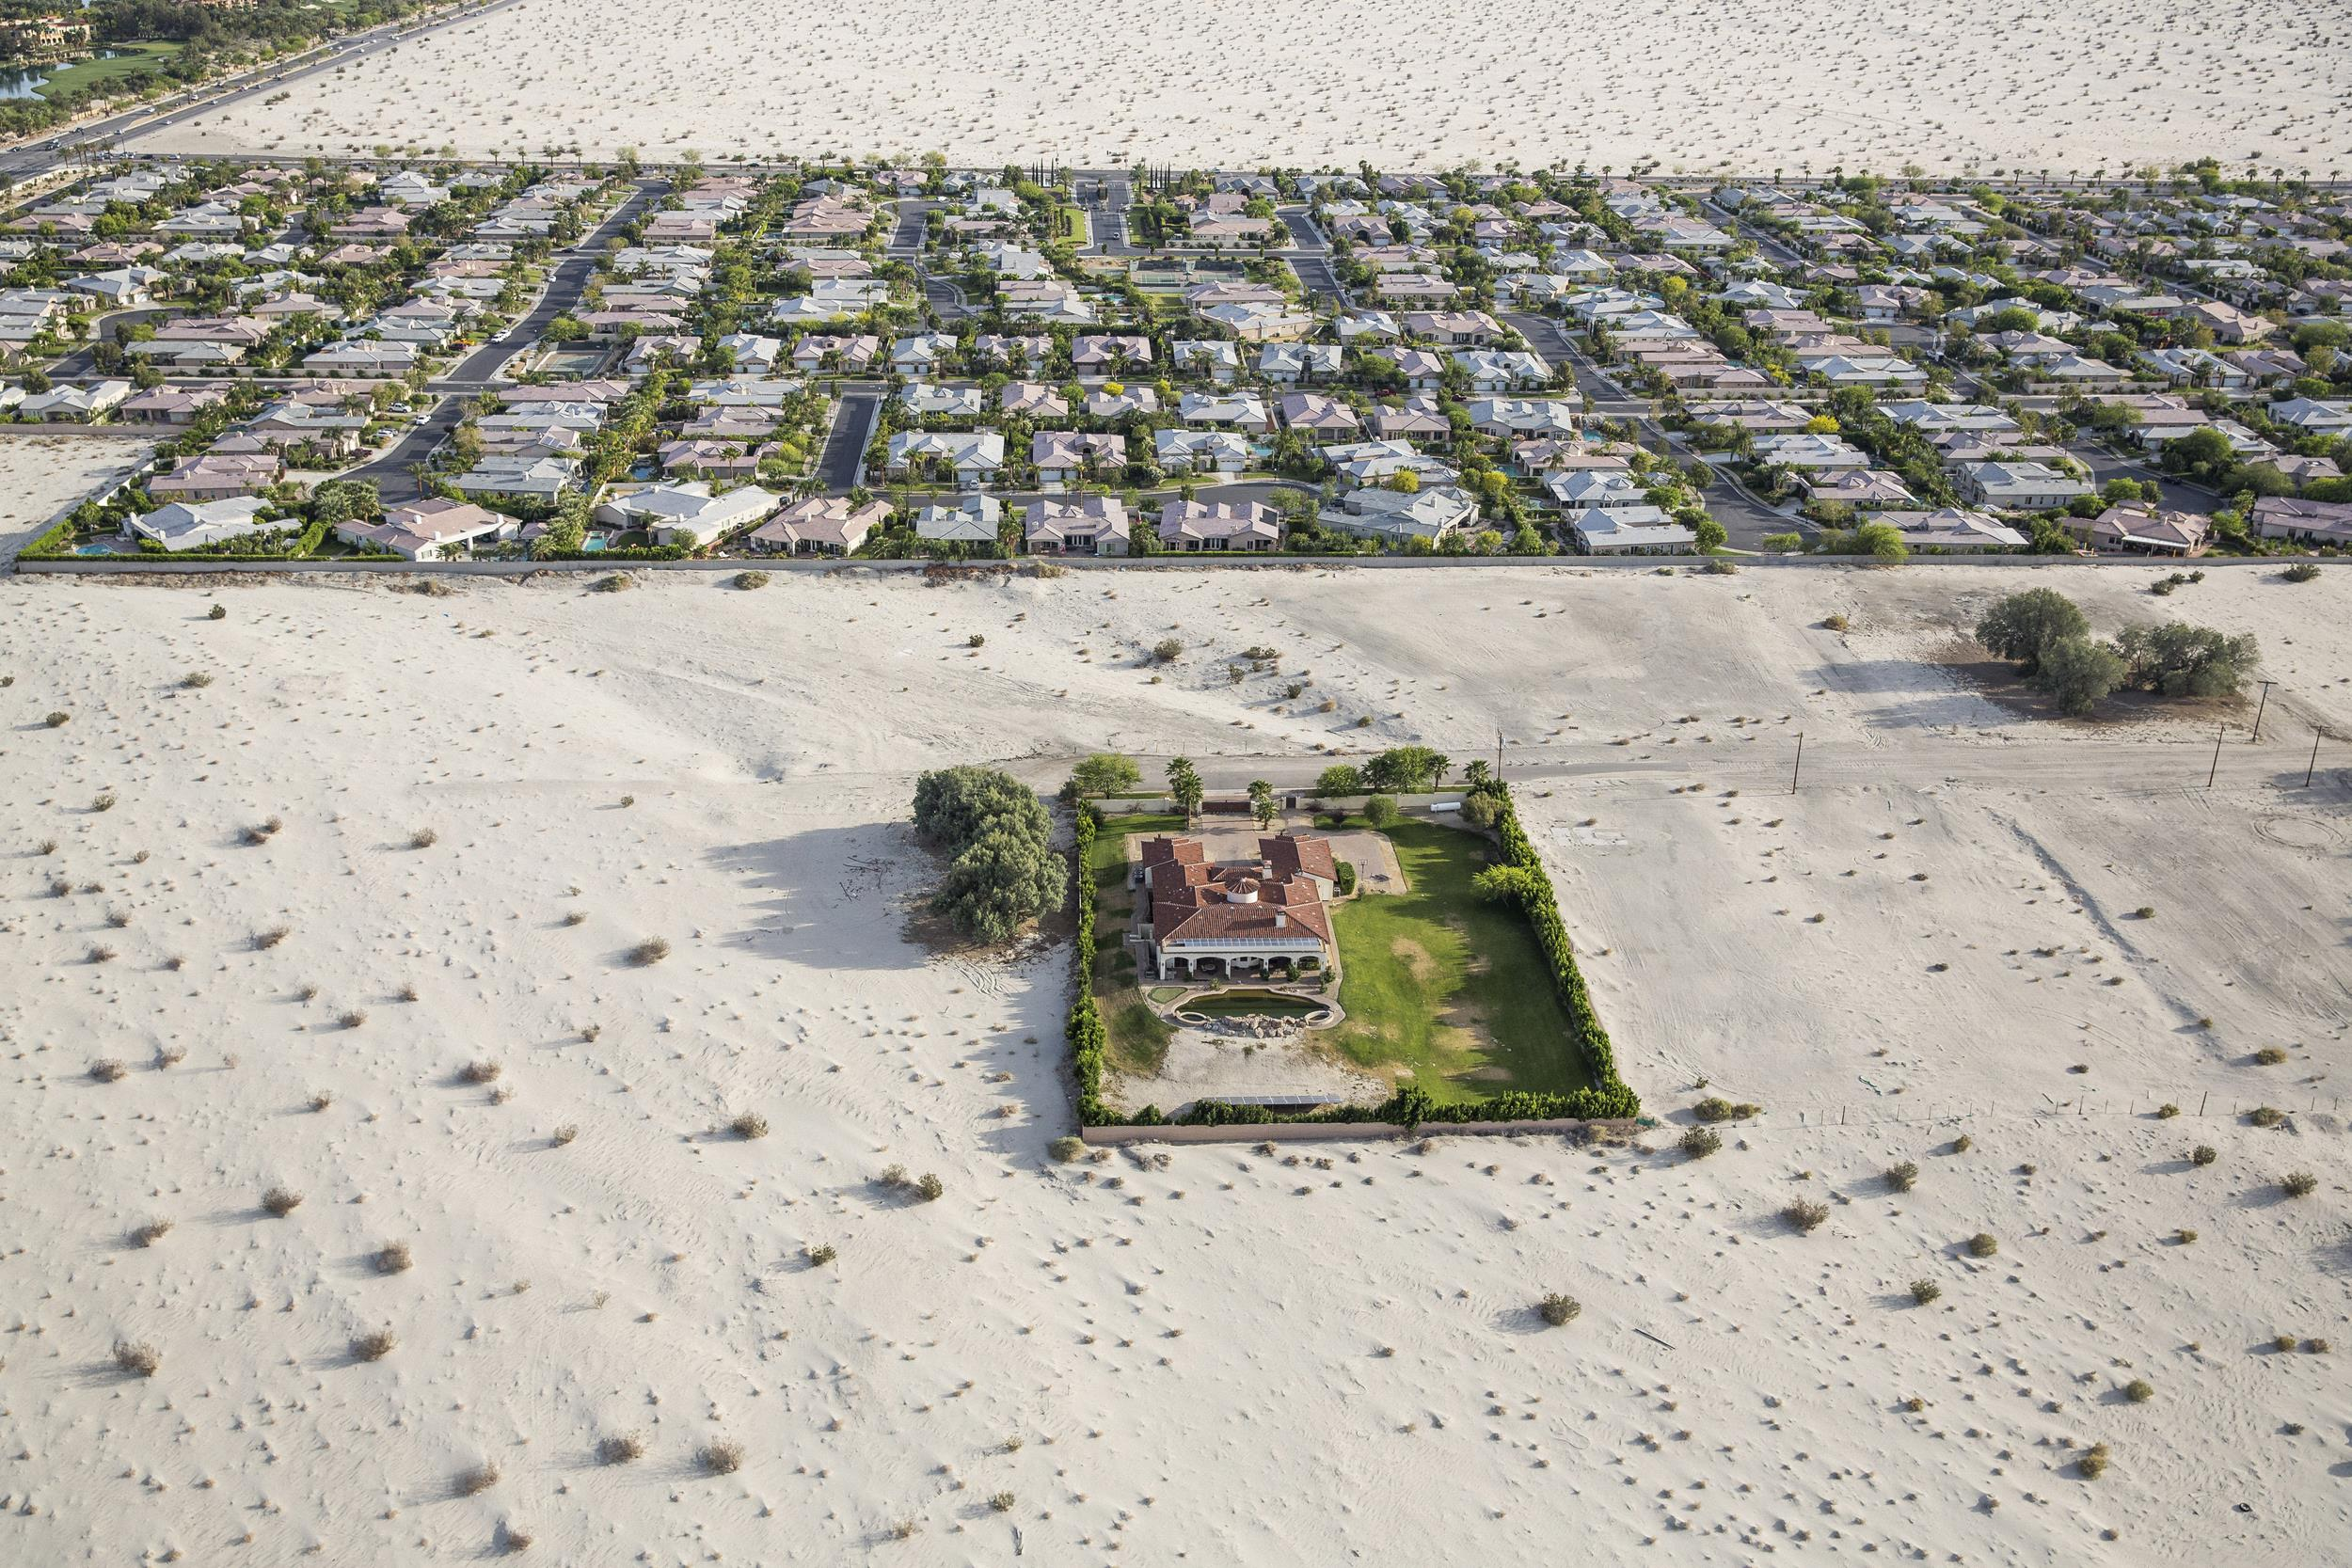 California, Drought and the Return of 'Limits to Growth'?